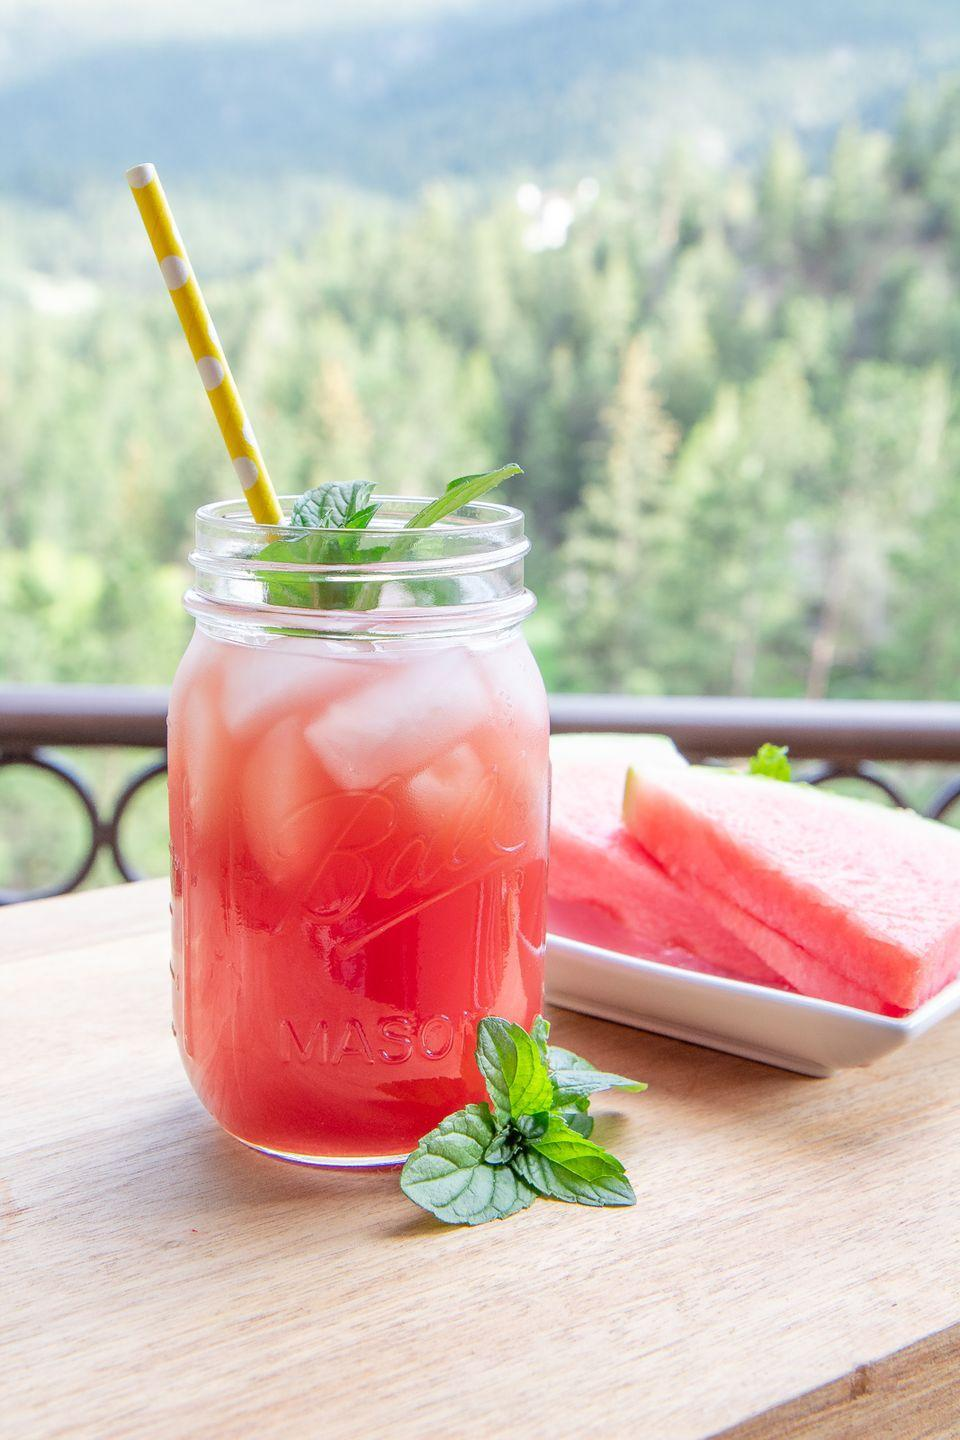 """<p>Put a twist on your summer iced tea with this mint and watermelon drink. Enjoy it while relaxing in the sun!</p><p><strong>Get the recipe at <a href=""""https://everydaylaura.com/2020/06/20/watermelon-mint-iced-tea/"""" rel=""""nofollow noopener"""" target=""""_blank"""" data-ylk=""""slk:Everyday Laura"""" class=""""link rapid-noclick-resp"""">Everyday Laura</a>. </strong></p><p><strong><a class=""""link rapid-noclick-resp"""" href=""""https://go.redirectingat.com?id=74968X1596630&url=https%3A%2F%2Fwww.walmart.com%2Fsearch%2F%3Fquery%3Dmason%2Bjars&sref=https%3A%2F%2Fwww.thepioneerwoman.com%2Ffood-cooking%2Fmeals-menus%2Fg32147587%2Fwatermelon-drink-recipes%2F"""" rel=""""nofollow noopener"""" target=""""_blank"""" data-ylk=""""slk:SHOP MASON JARS"""">SHOP MASON JARS</a><br></strong></p>"""